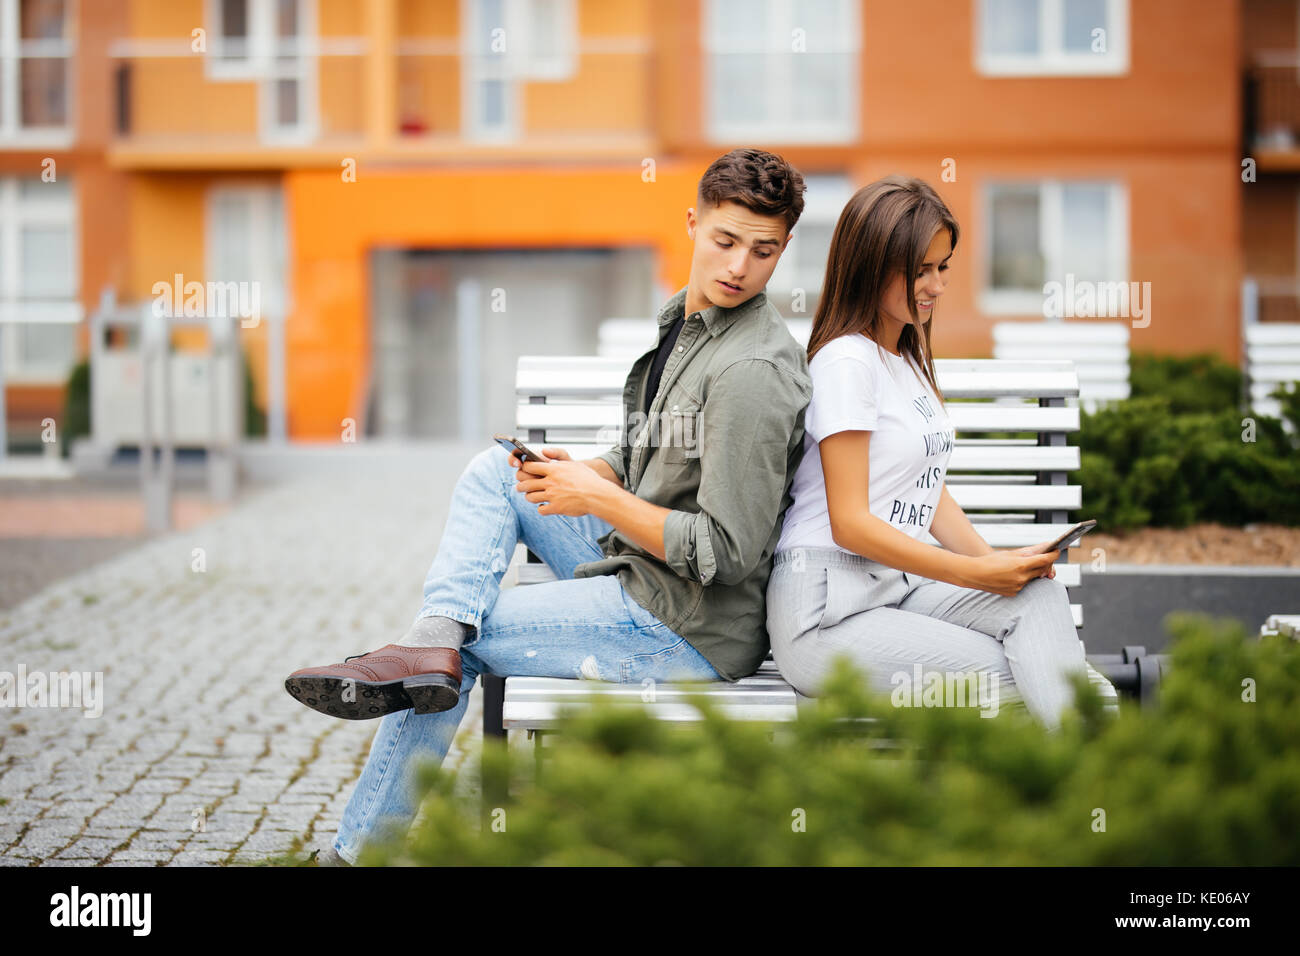 Young Caucasian couple on date, sitting back to back on park bench holding cellphones in hands, using app, making - Stock Image